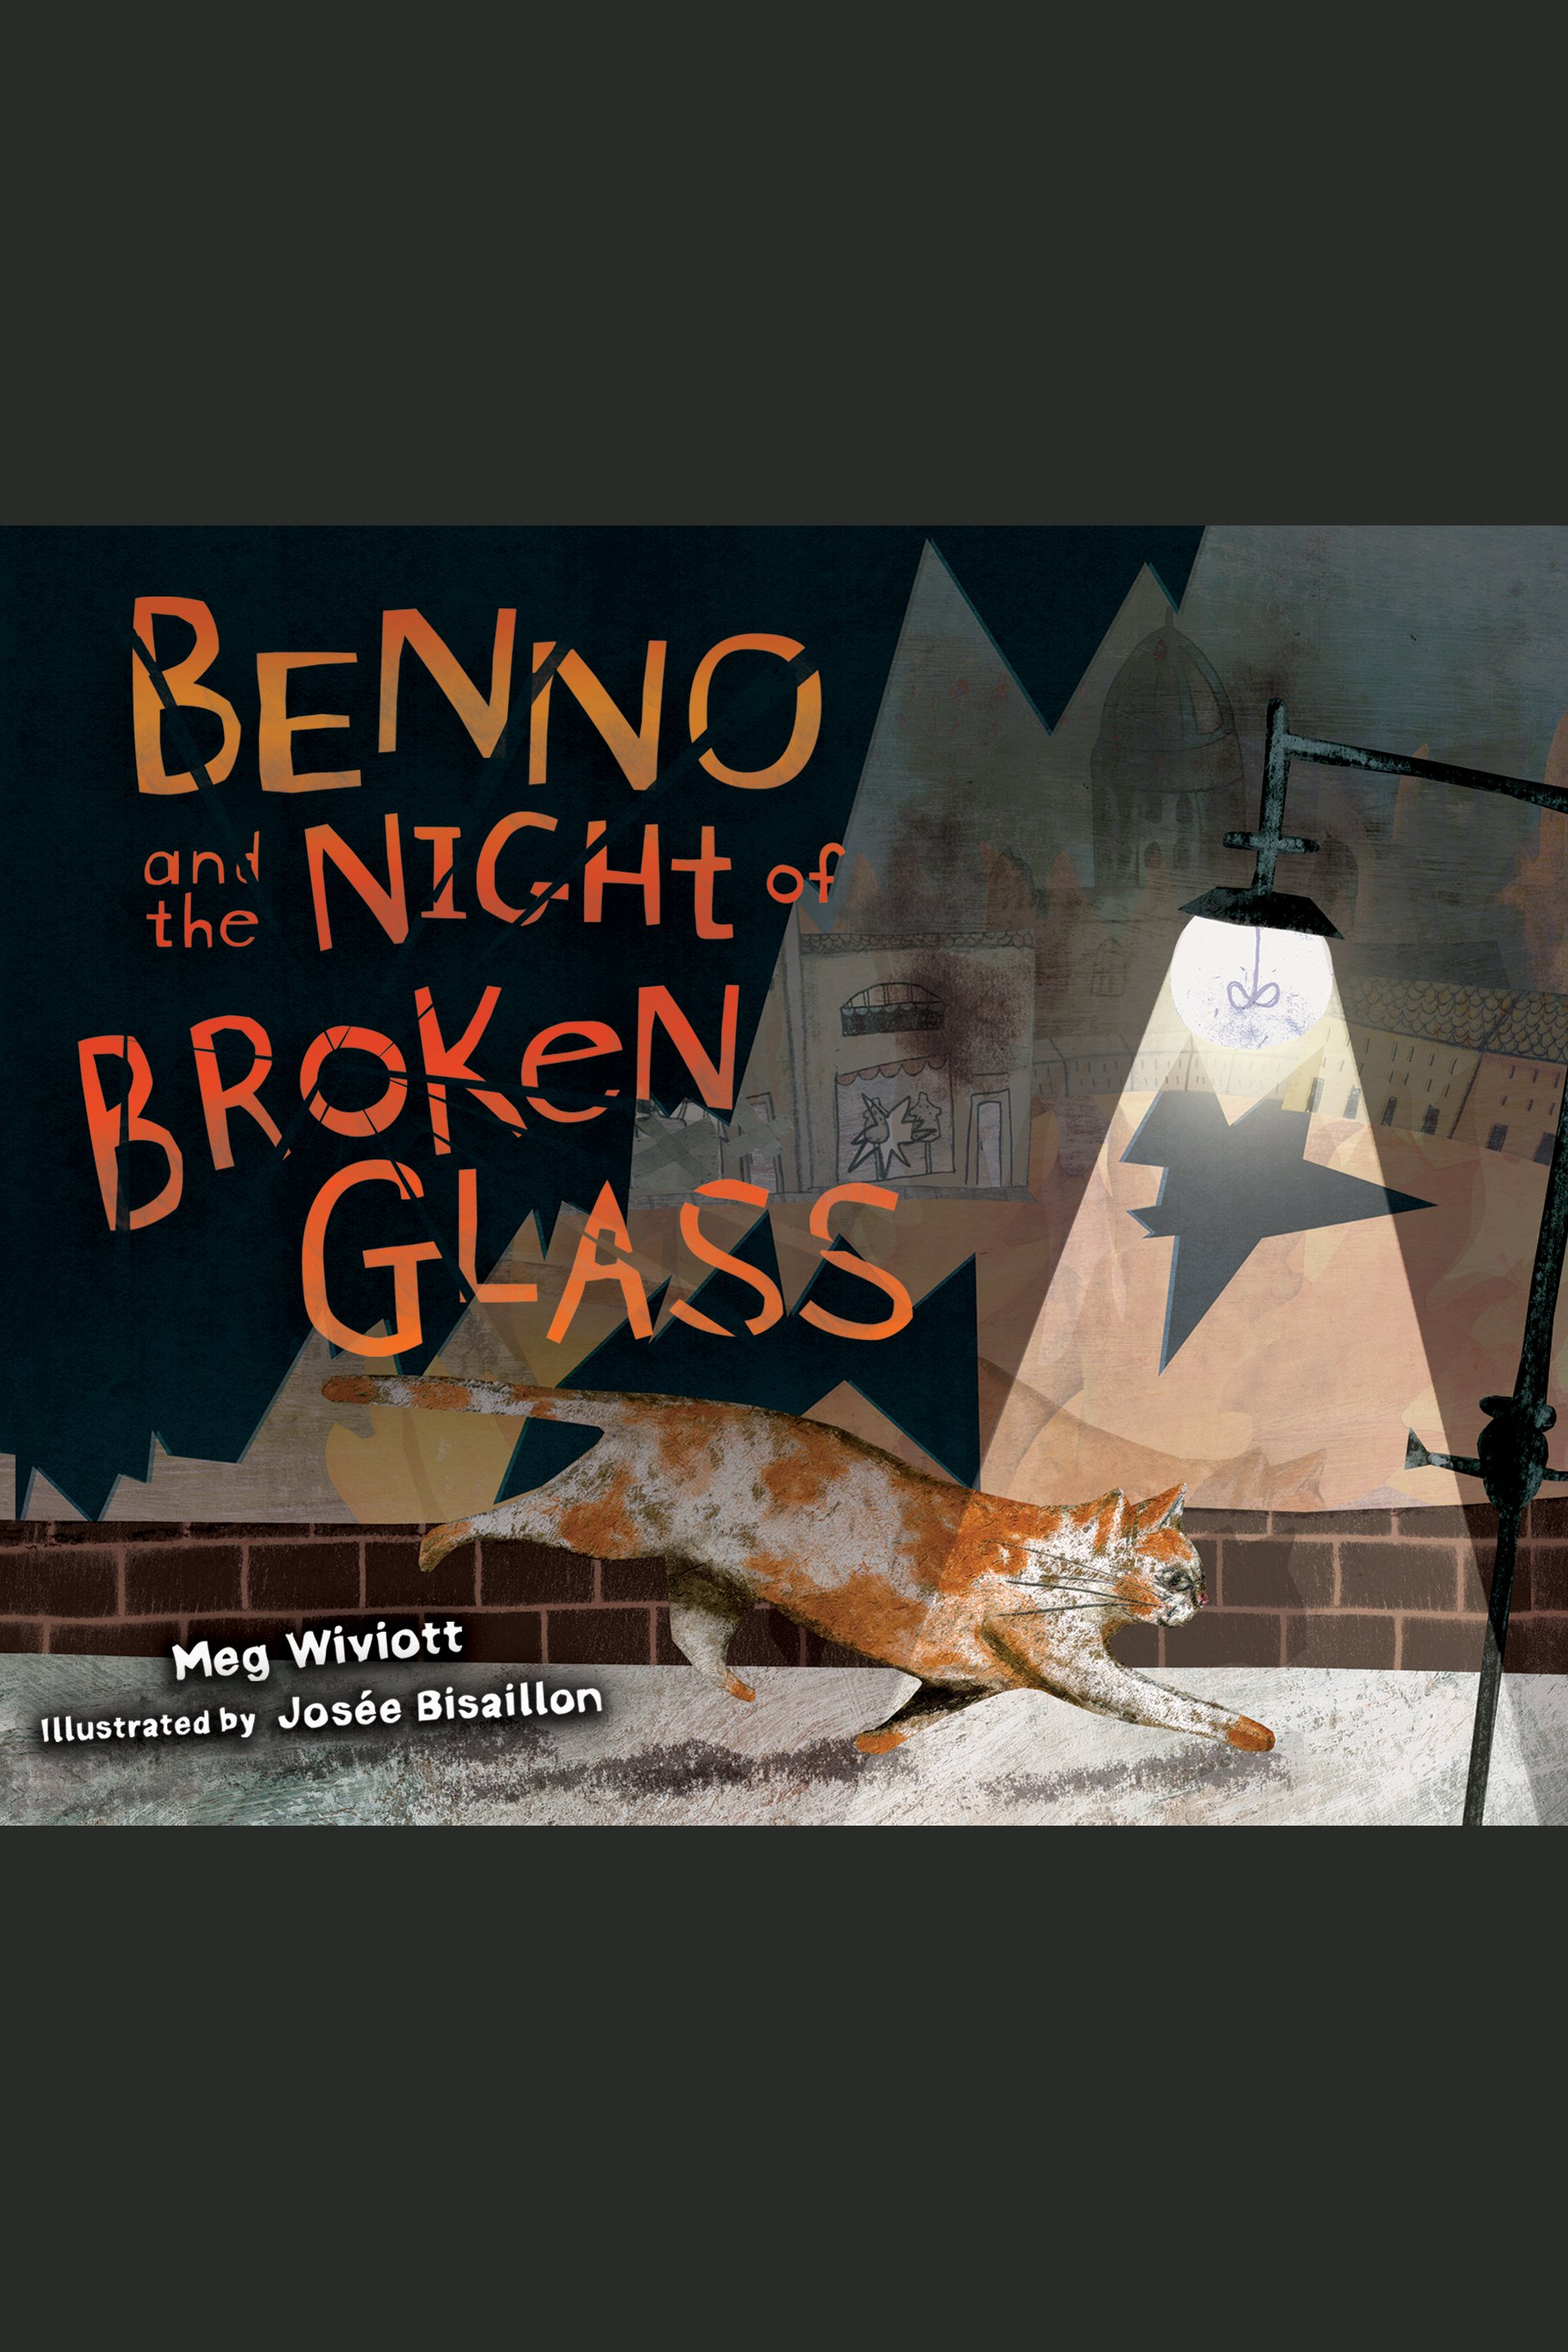 Benno and the night of brokeng glass cover image